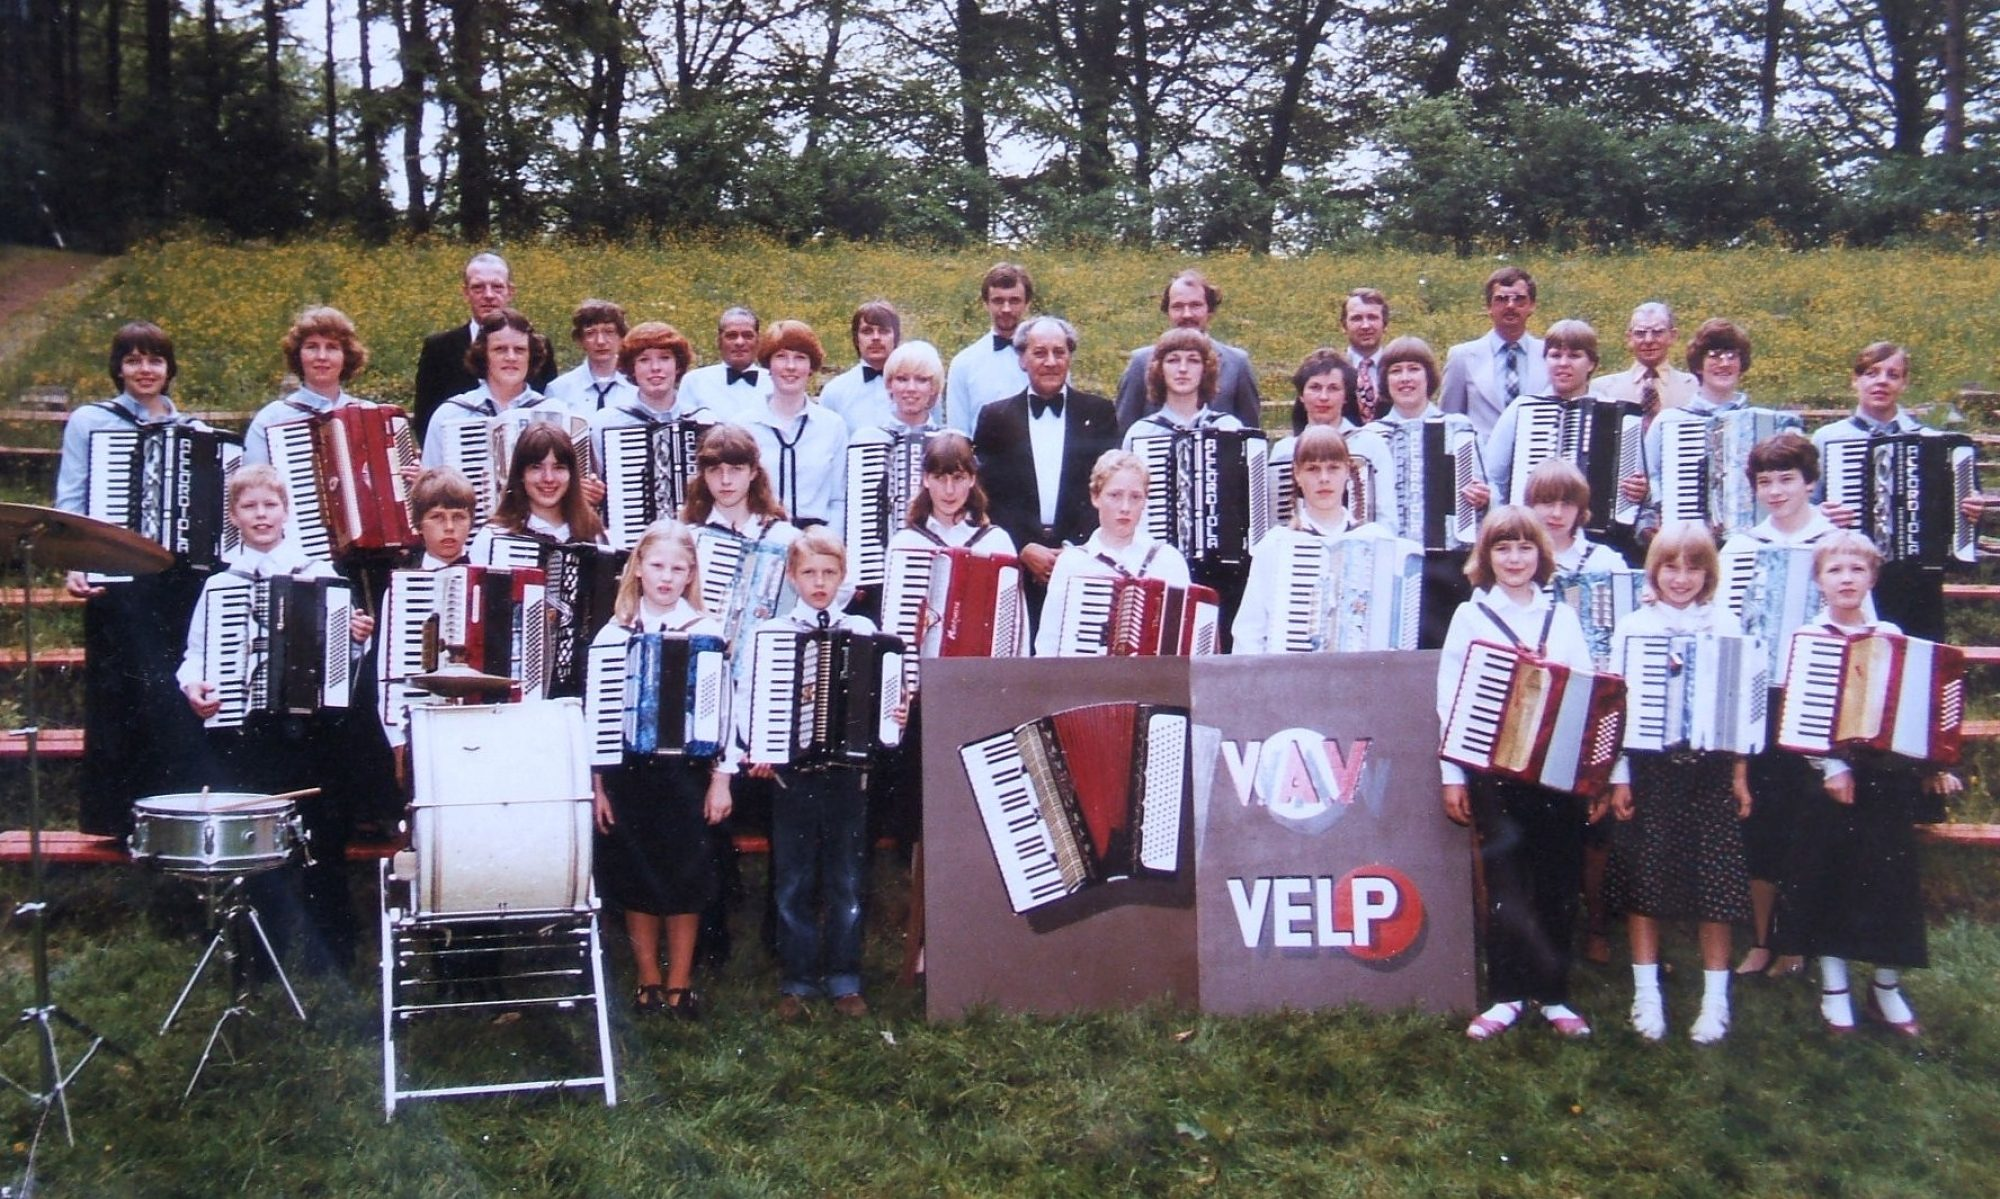 Velpse Accordeon Vereniging